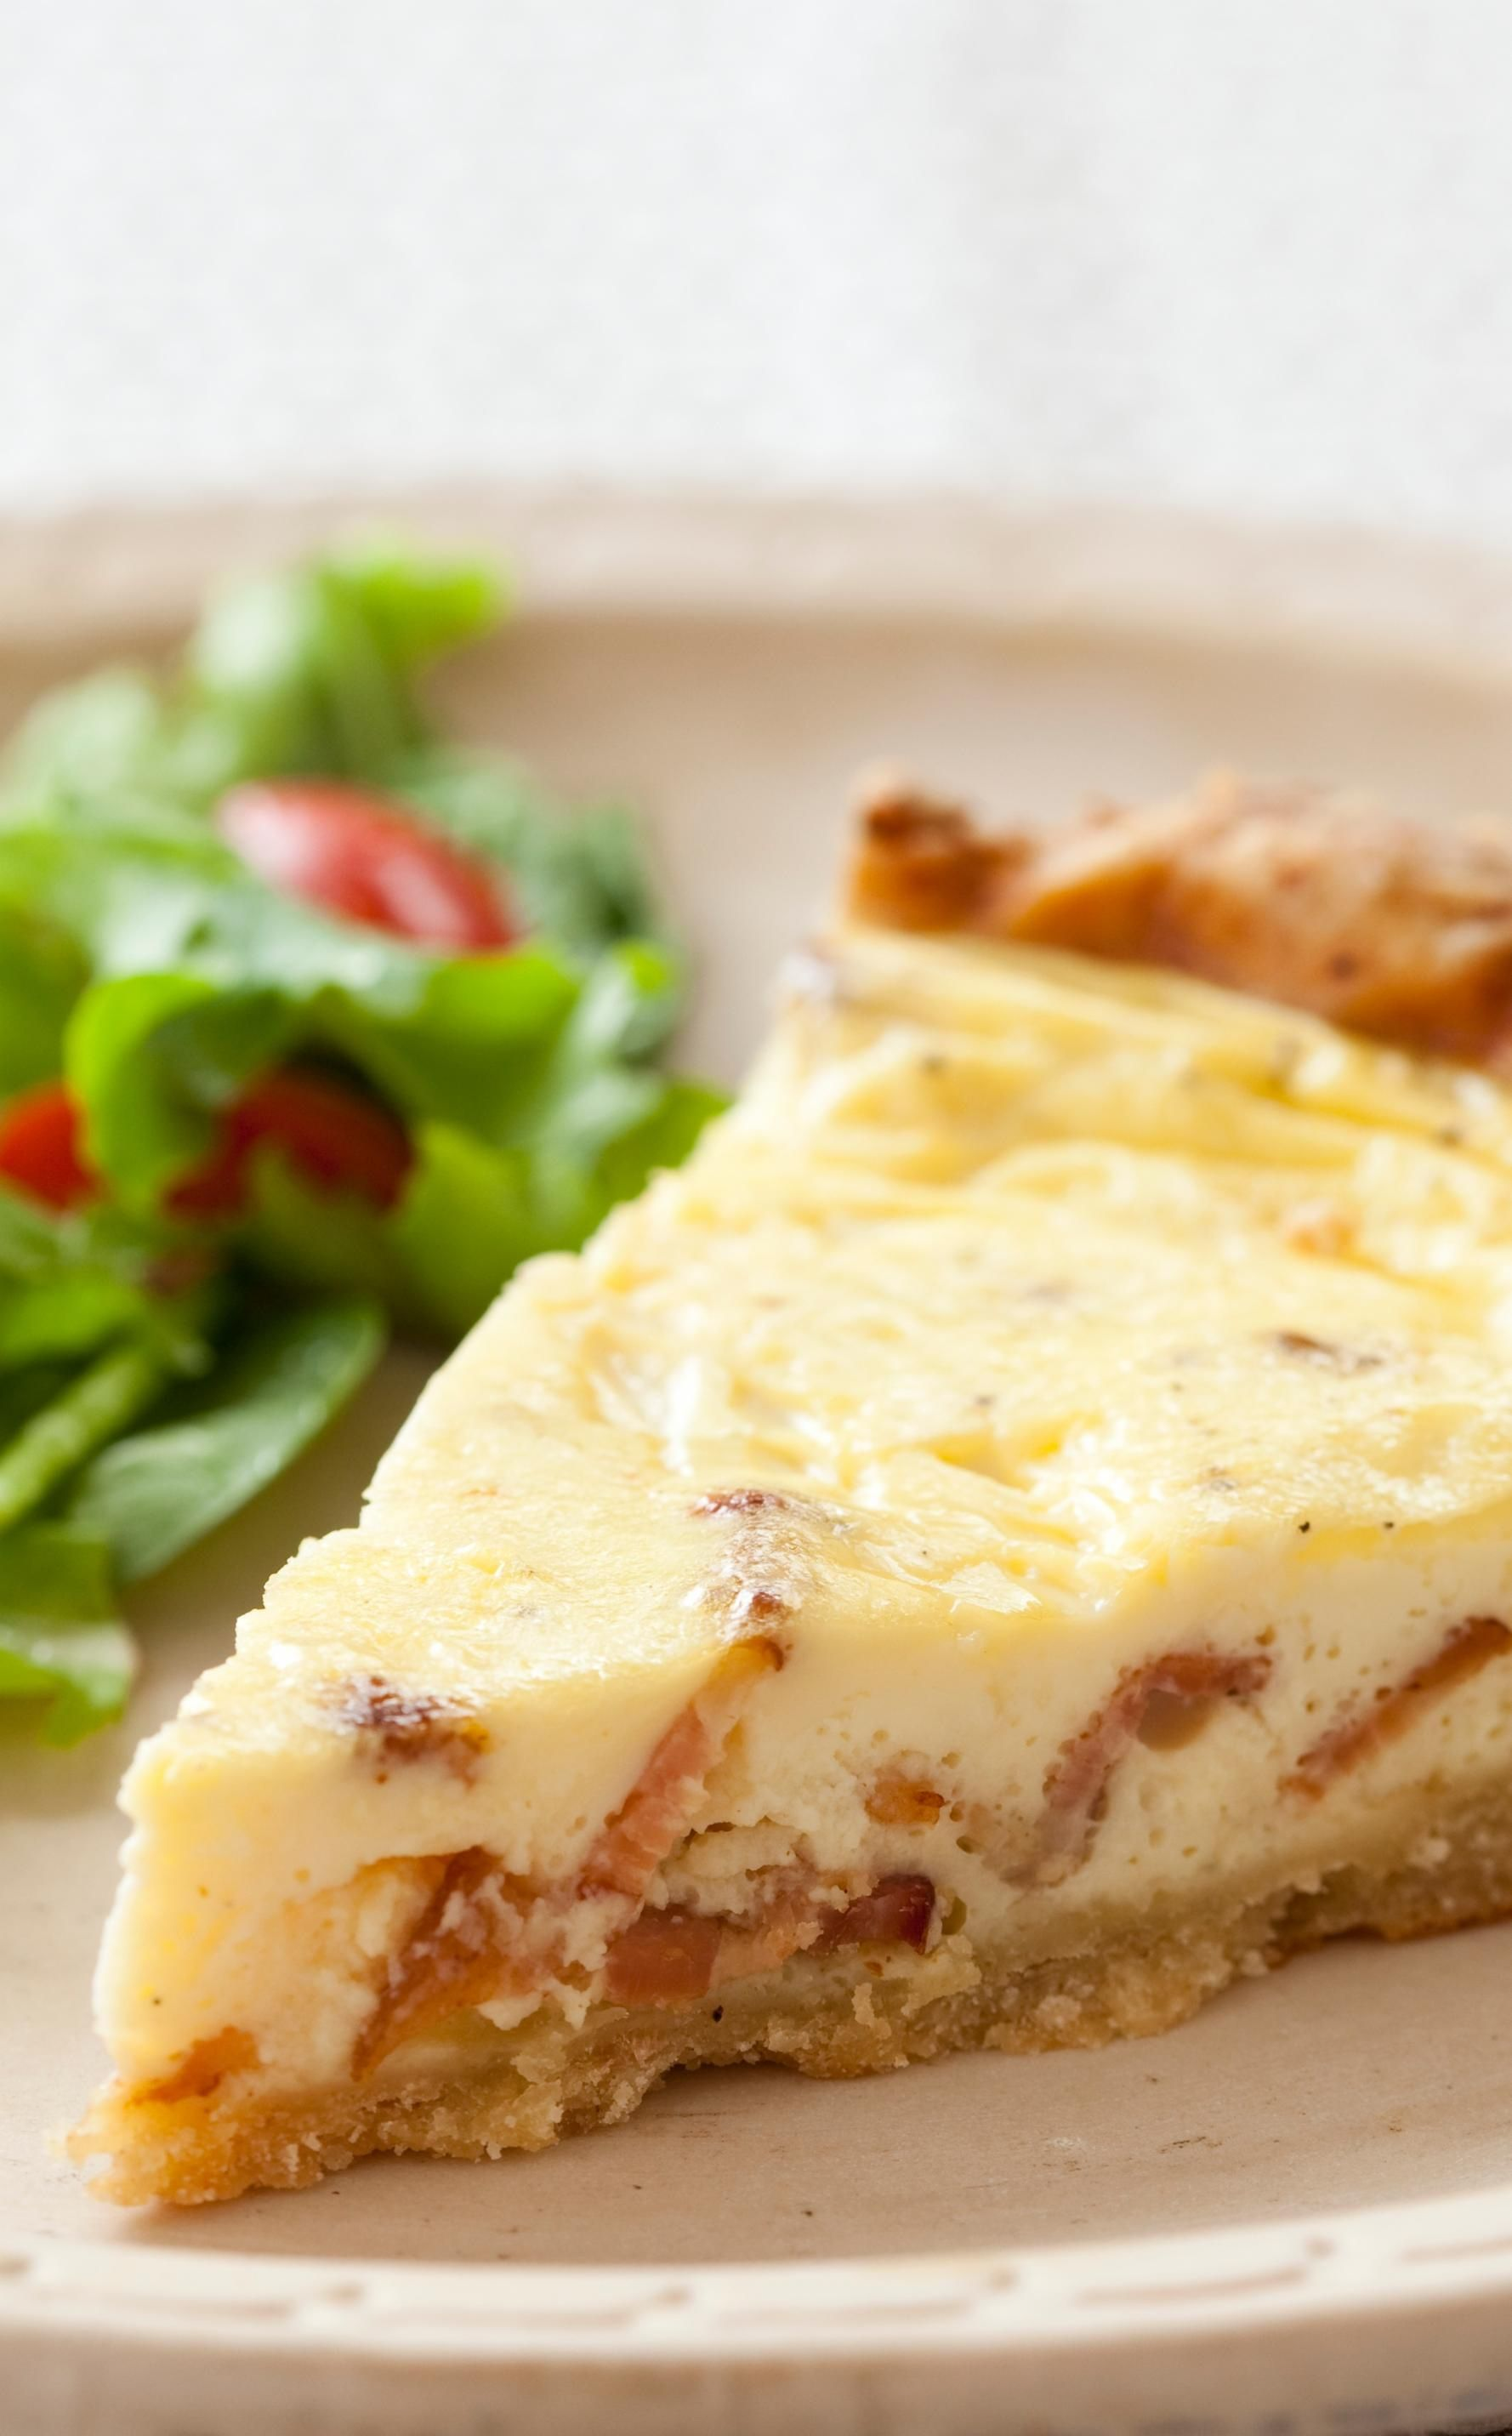 Quiche Lorraine A Super Savory Creamy Quiche That Is The Perfect Choice For Brunch Or Even Dinner Quiche Lorraine Quiche Lorraine Recipe Buttermilk Recipes